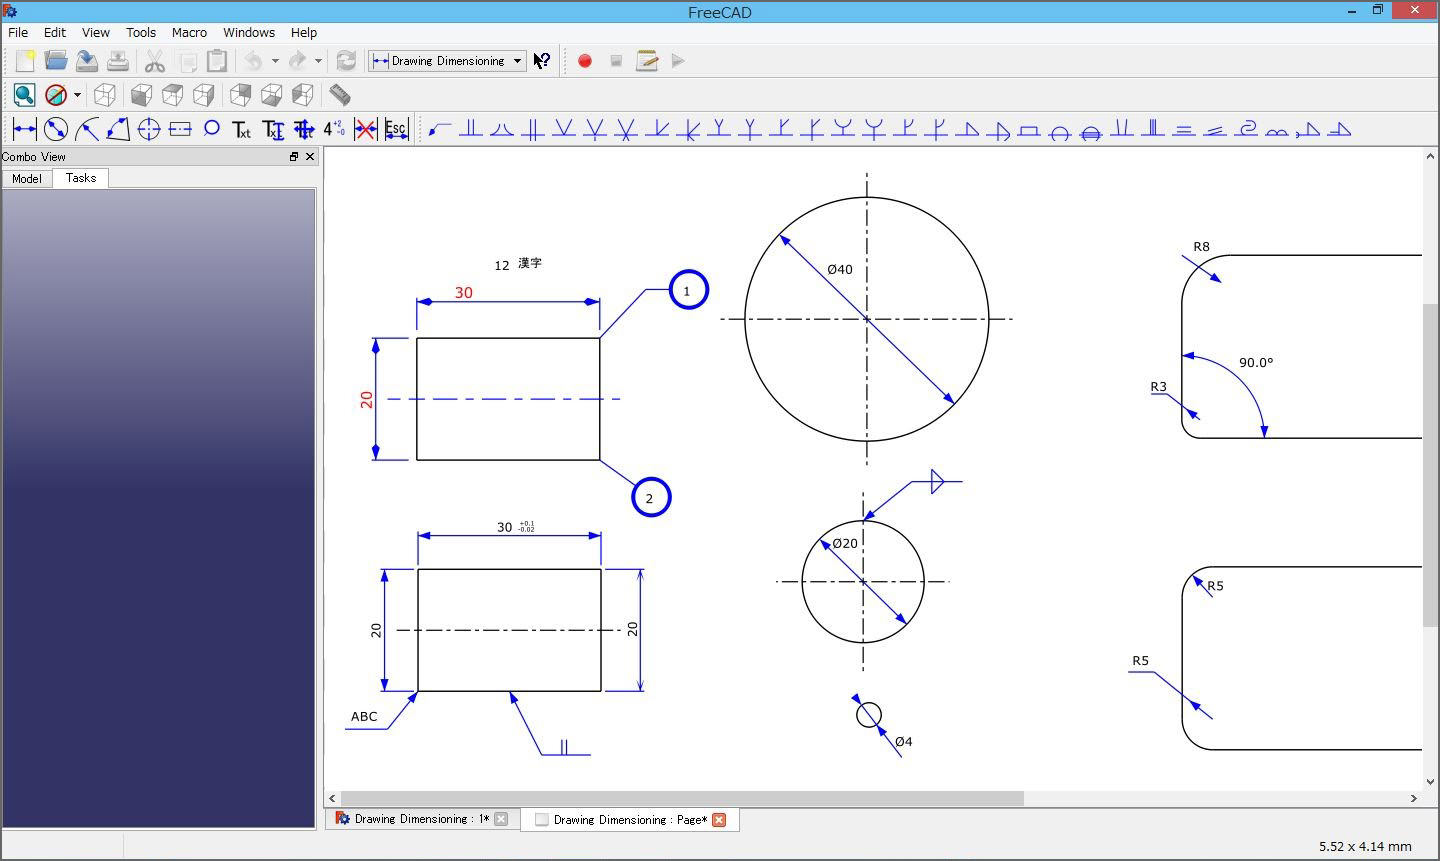 6 Free Autocad Alternatives 2d Cad Compatible With Dwg Format Electrical Schematic Mac Freecad Is An Open Source Parametric 3d Modeler Made Primarily To Design Real Life Objects Of Any Size Modeling Allows You Easily Modify Your